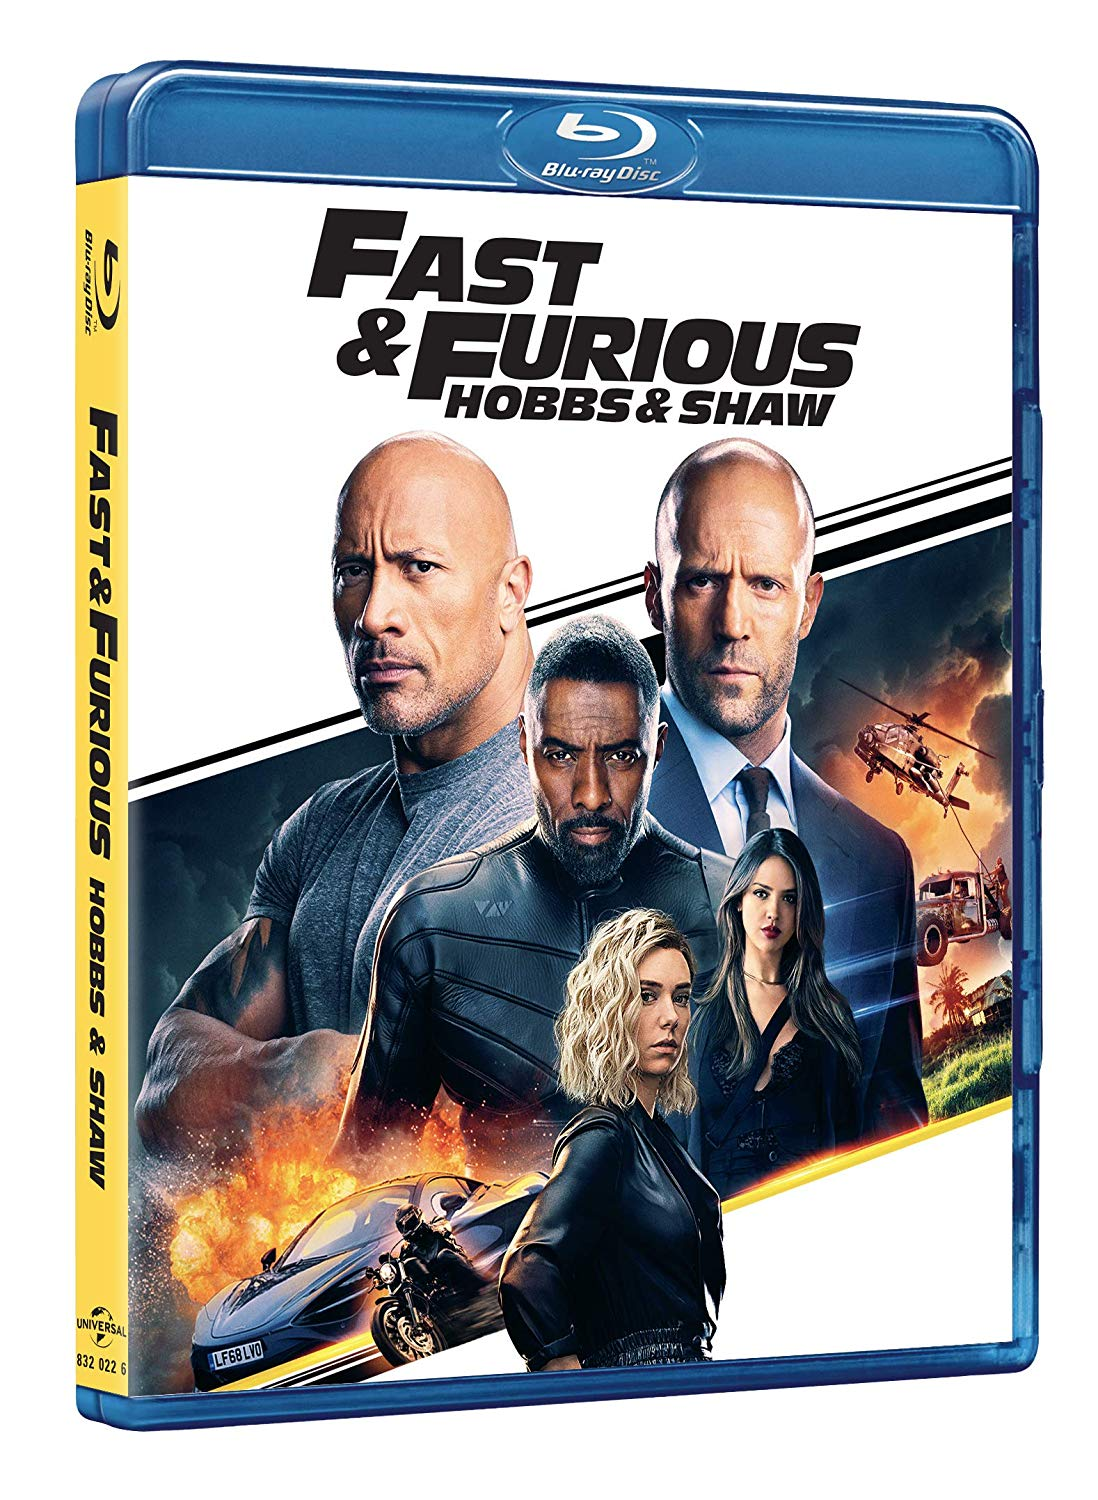 Fast and Furious - Hobbs and Shaw (2019)